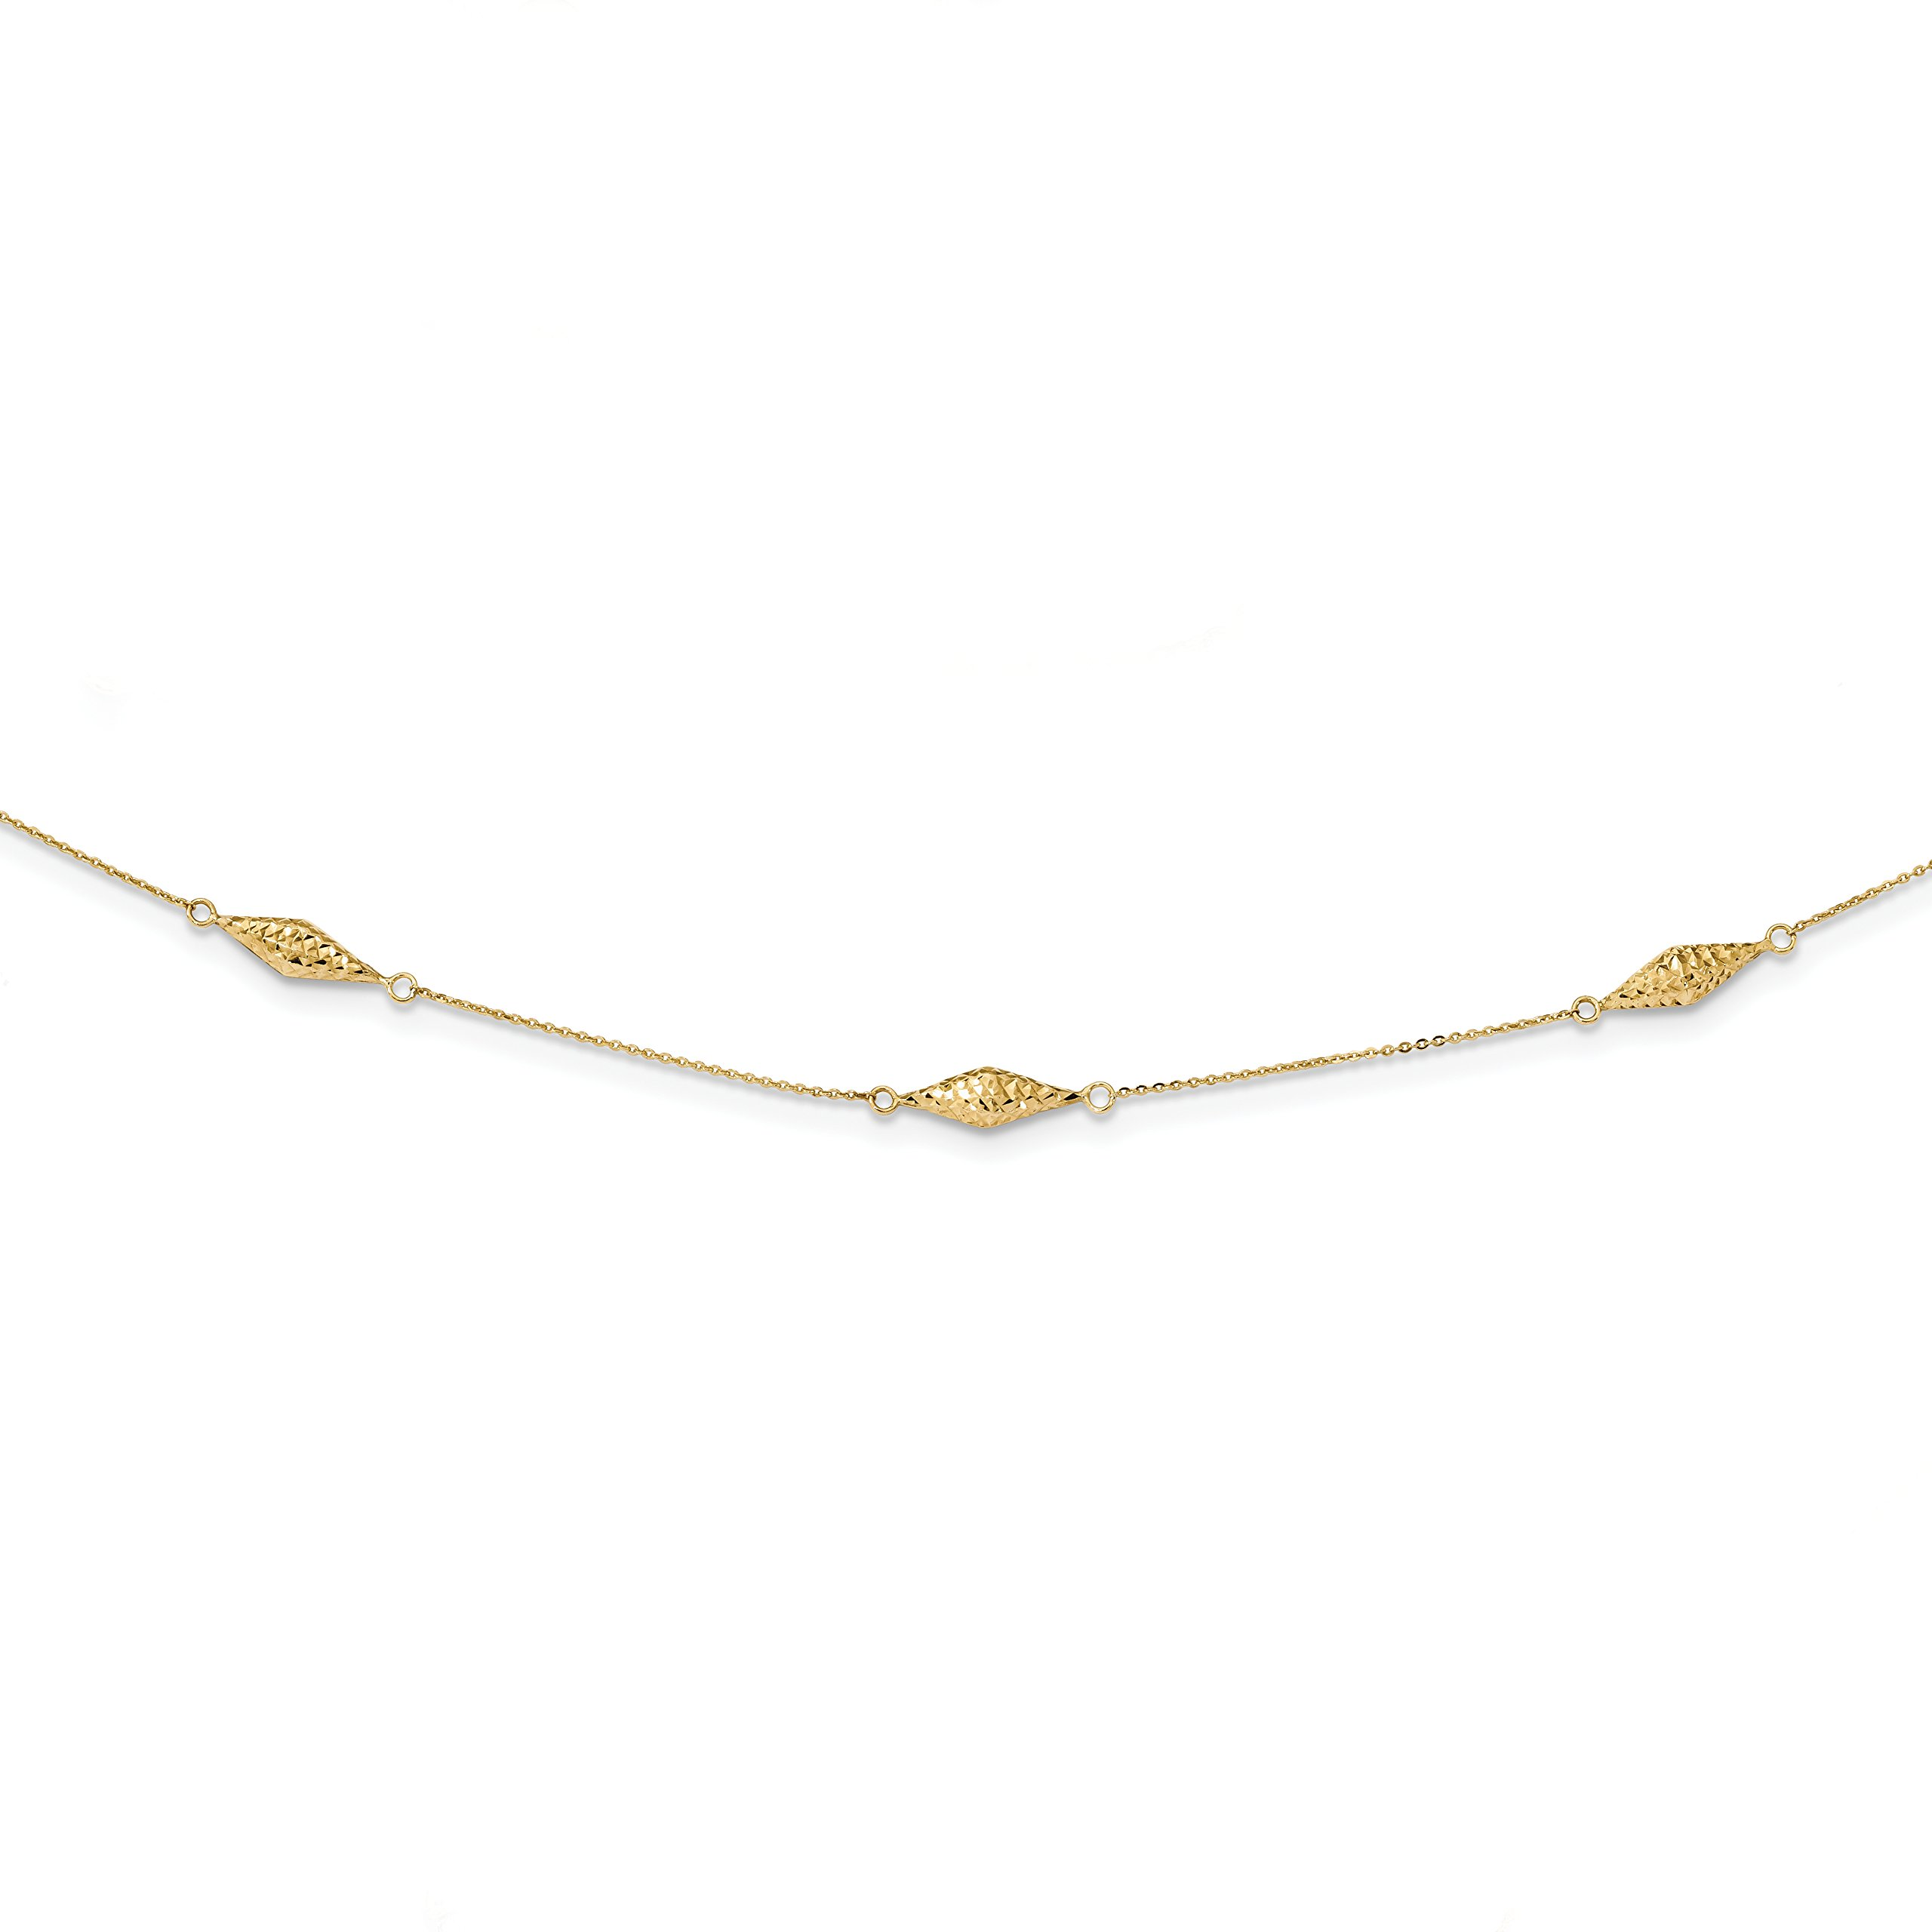 ICE CARATS 14k Yellow Gold Beaded 18 Inch Chain Necklace Fancy Bead Station Fine Jewelry Gift Set For Women Heart by ICE CARATS